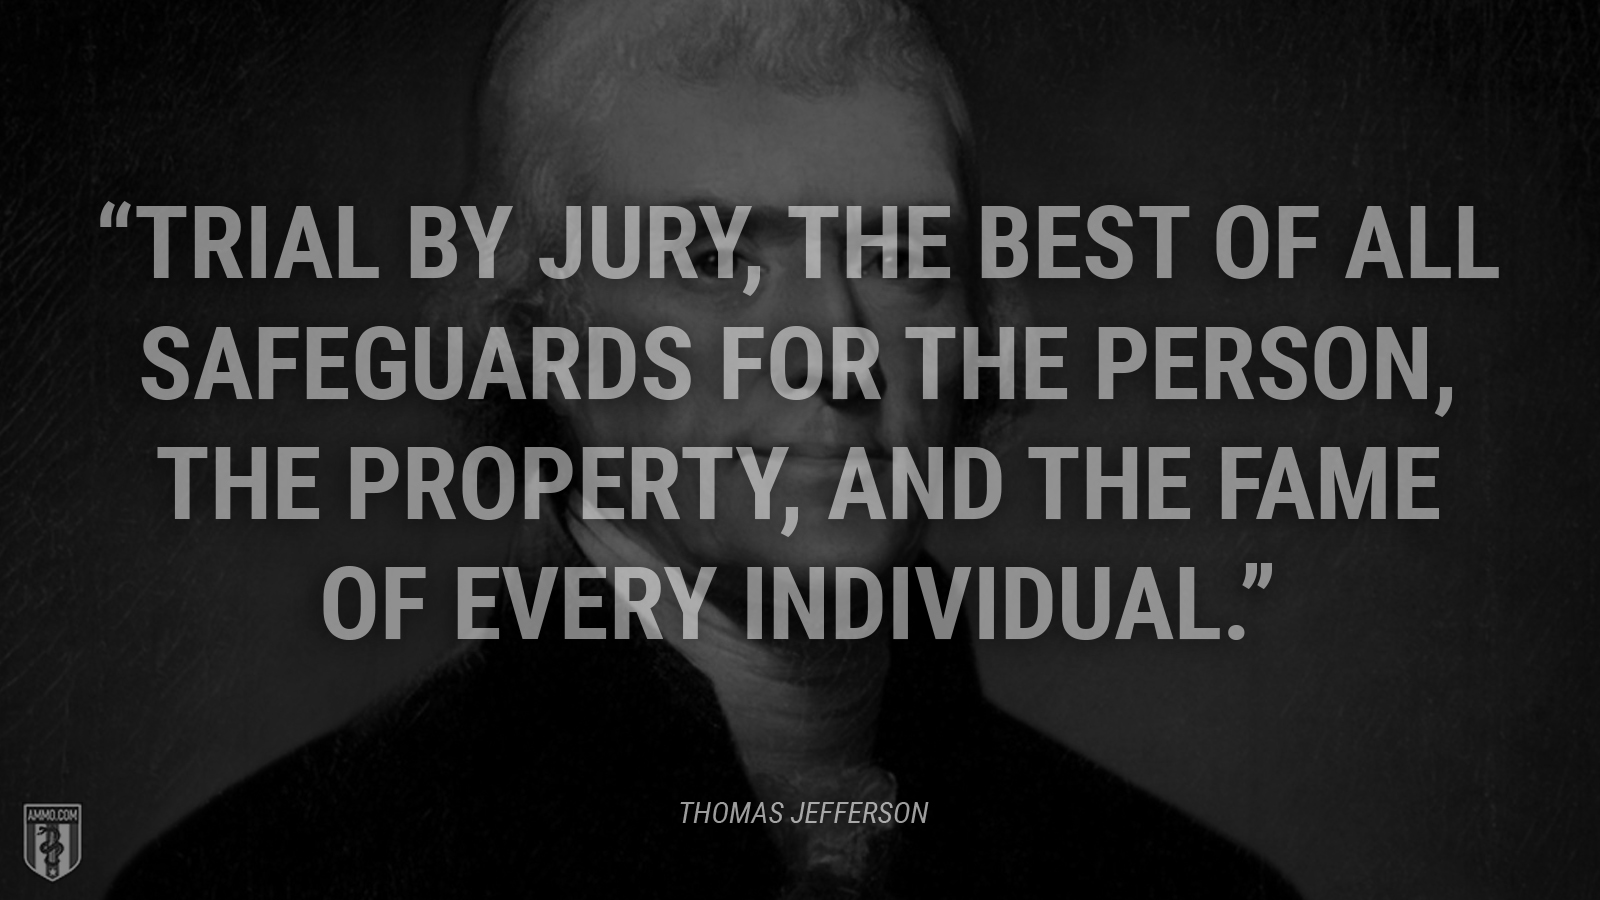 """""""Trial by jury, the best of all safeguards for the person, the property, and the fame of every individual."""" - Thomas Jefferson"""